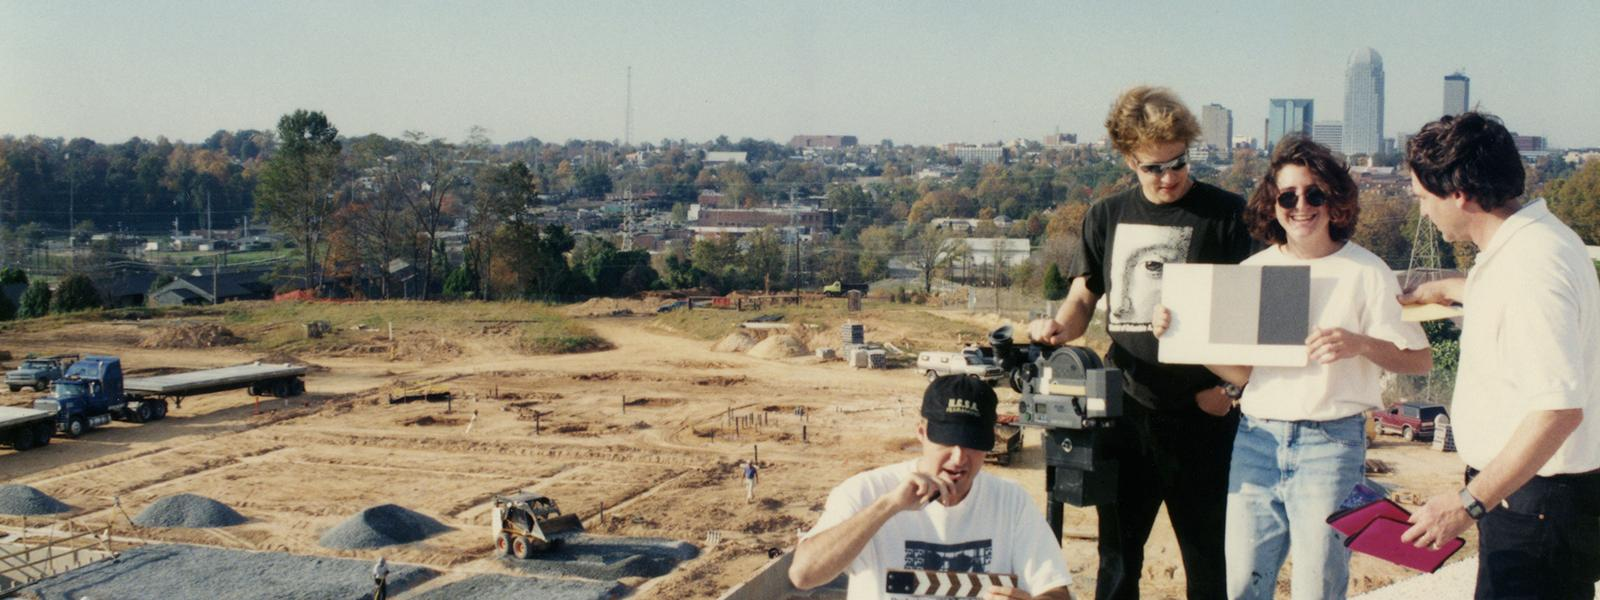 Students and faculty member documenting the construction progress of the School of Filmmaking's Studio Village, 1996.